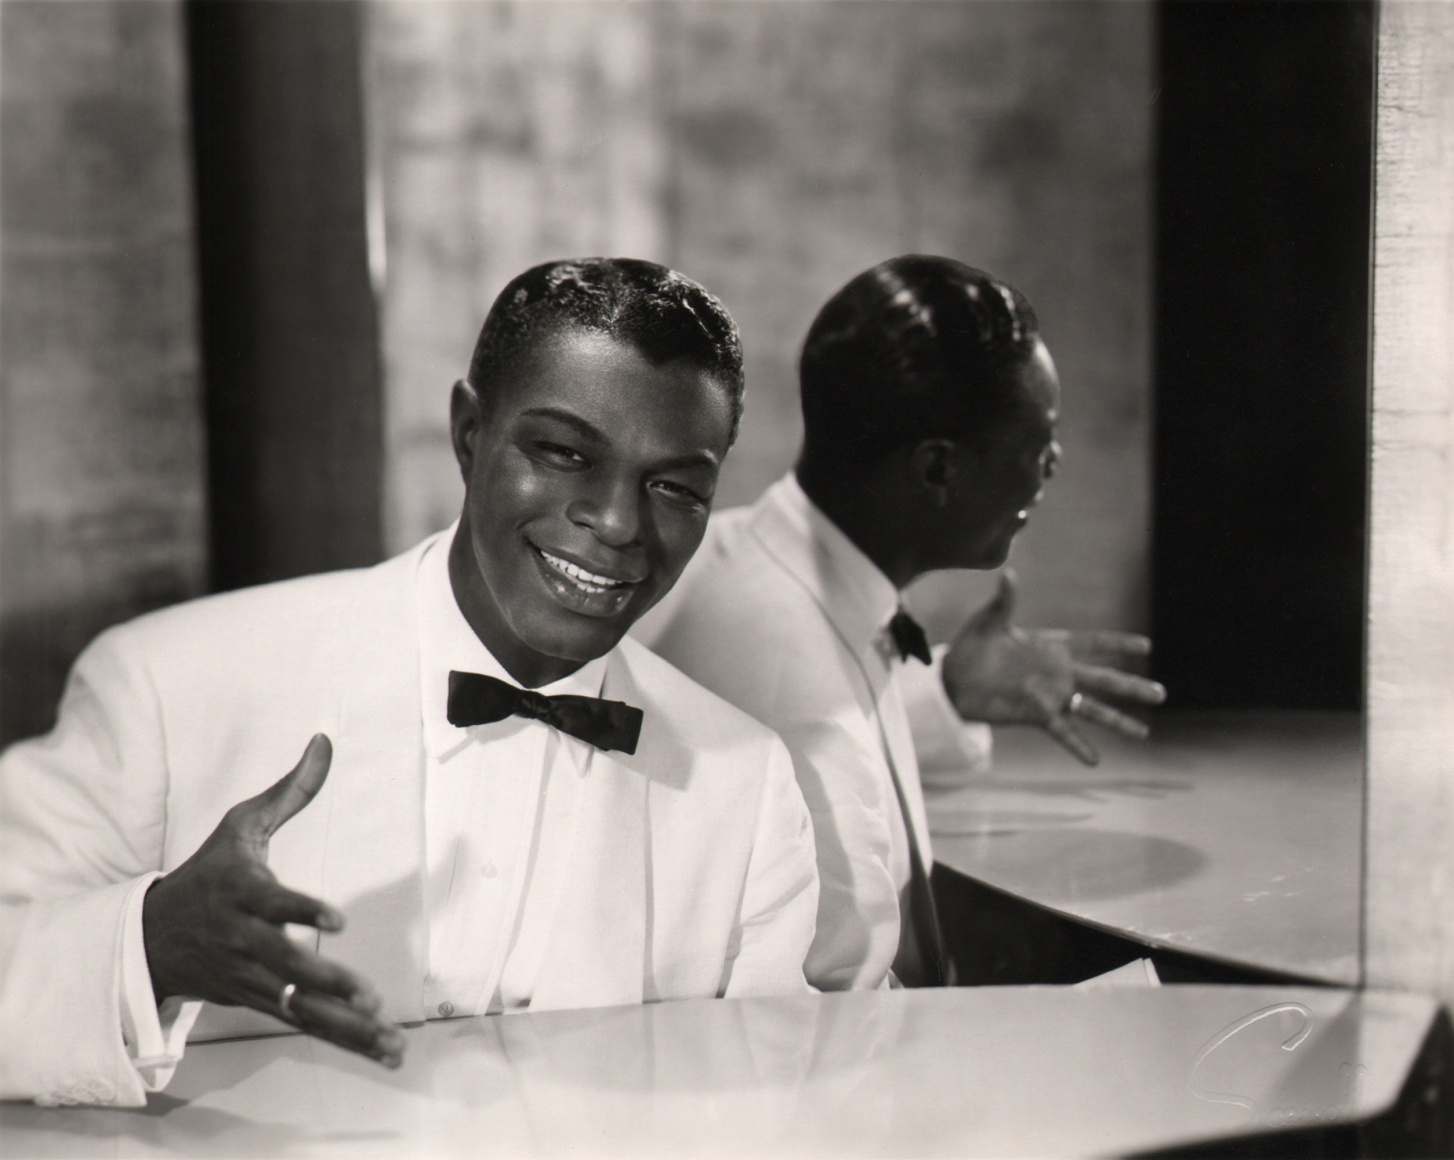 Wallace Seawell, Nat King Cole, c. 1955. Subject is seated in a white suit at the piano in front of a mirror, gesturing and smiling towards the camera.